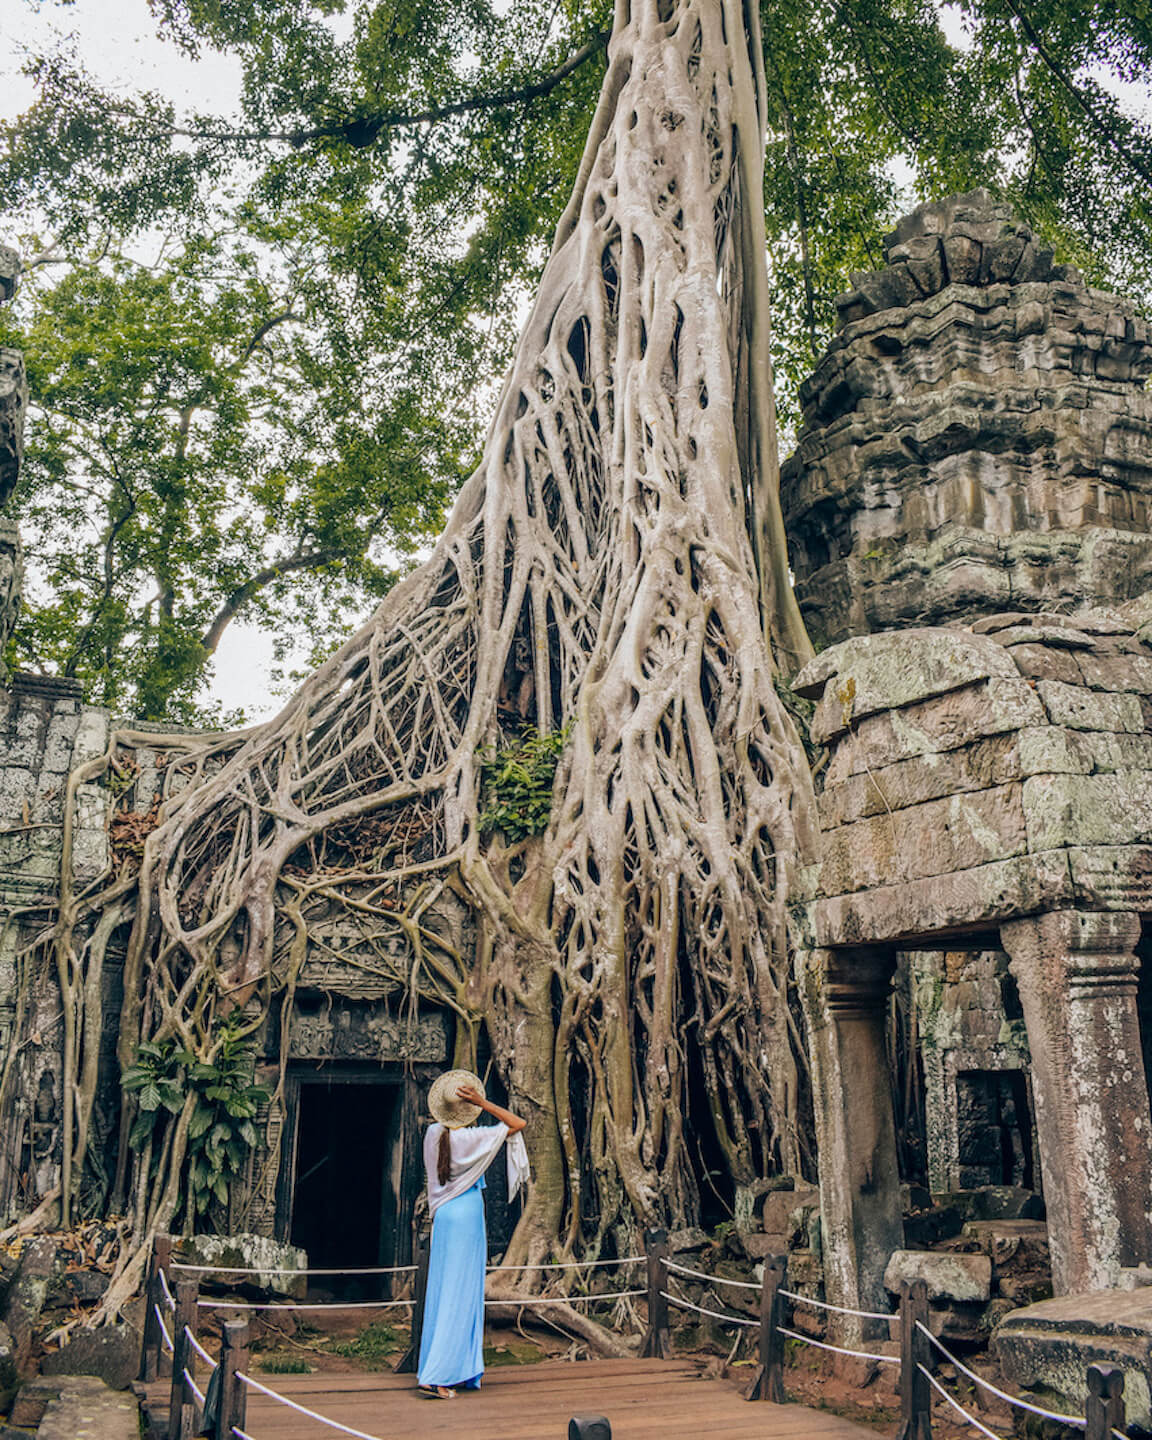 banyan tree grown over ta Prohm temple in Angkor